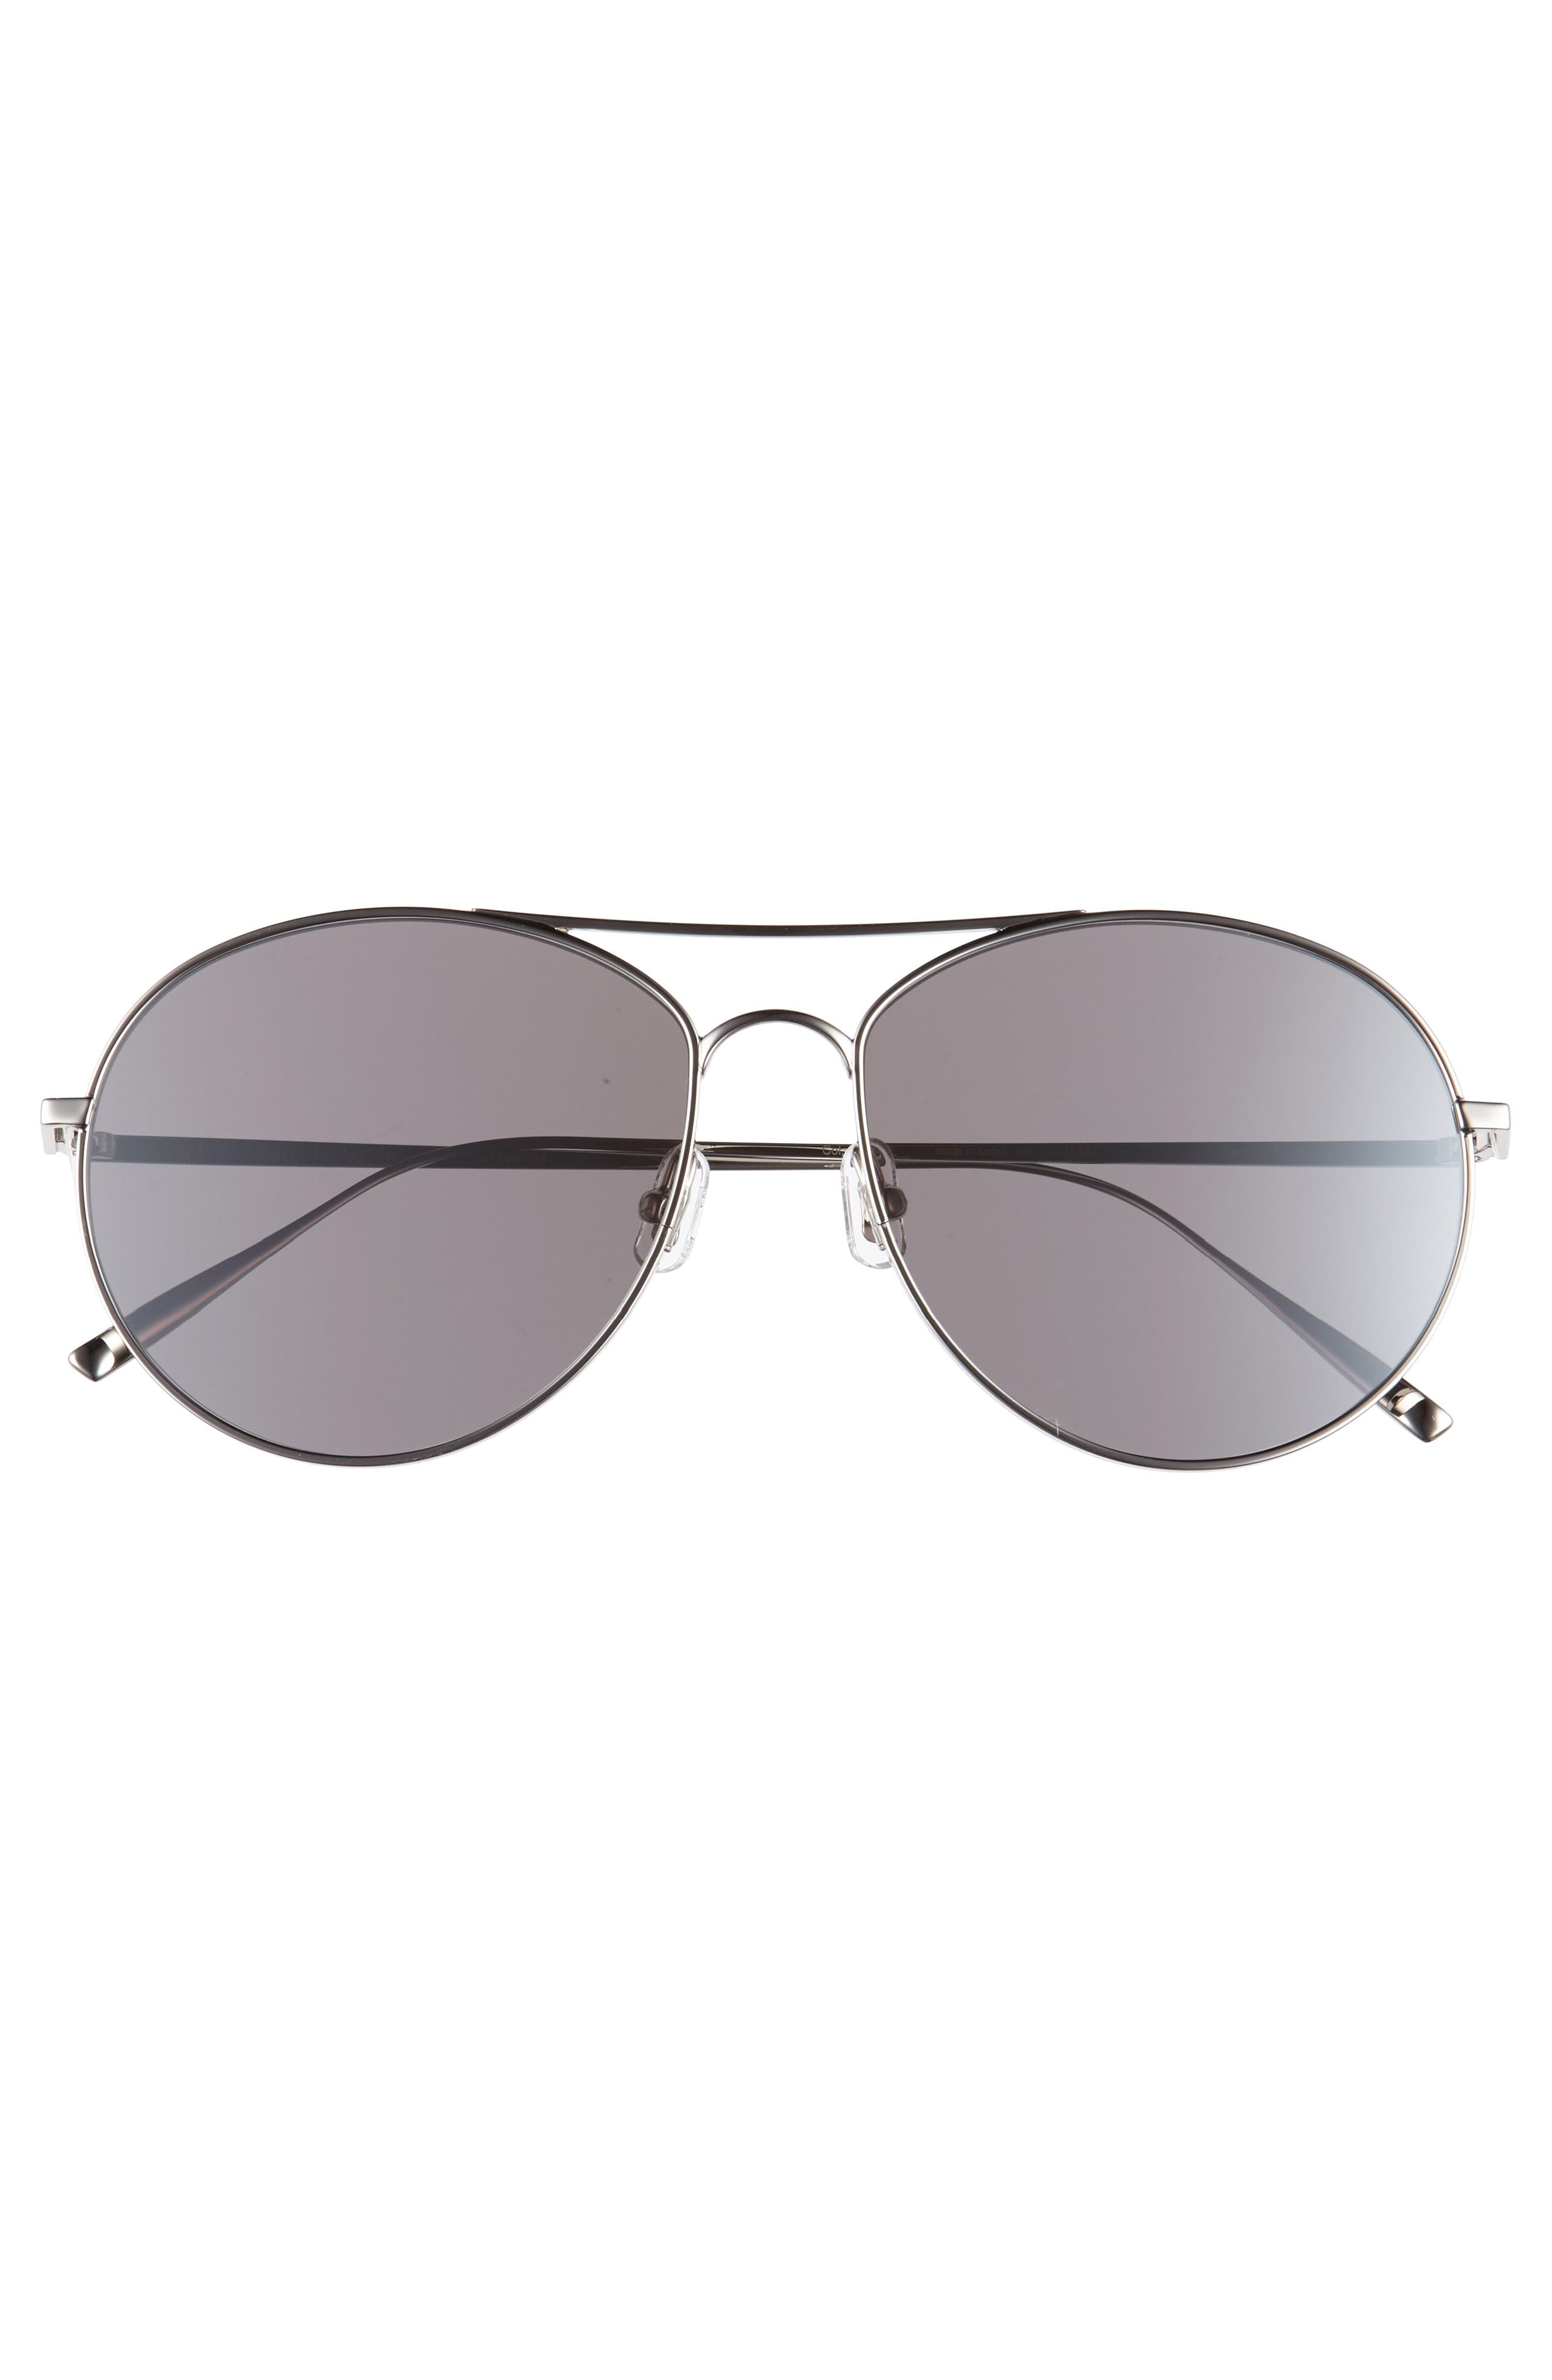 Ranny Ring 58mm Aviator Sunglasses,                             Alternate thumbnail 3, color,                             Silver Mirror